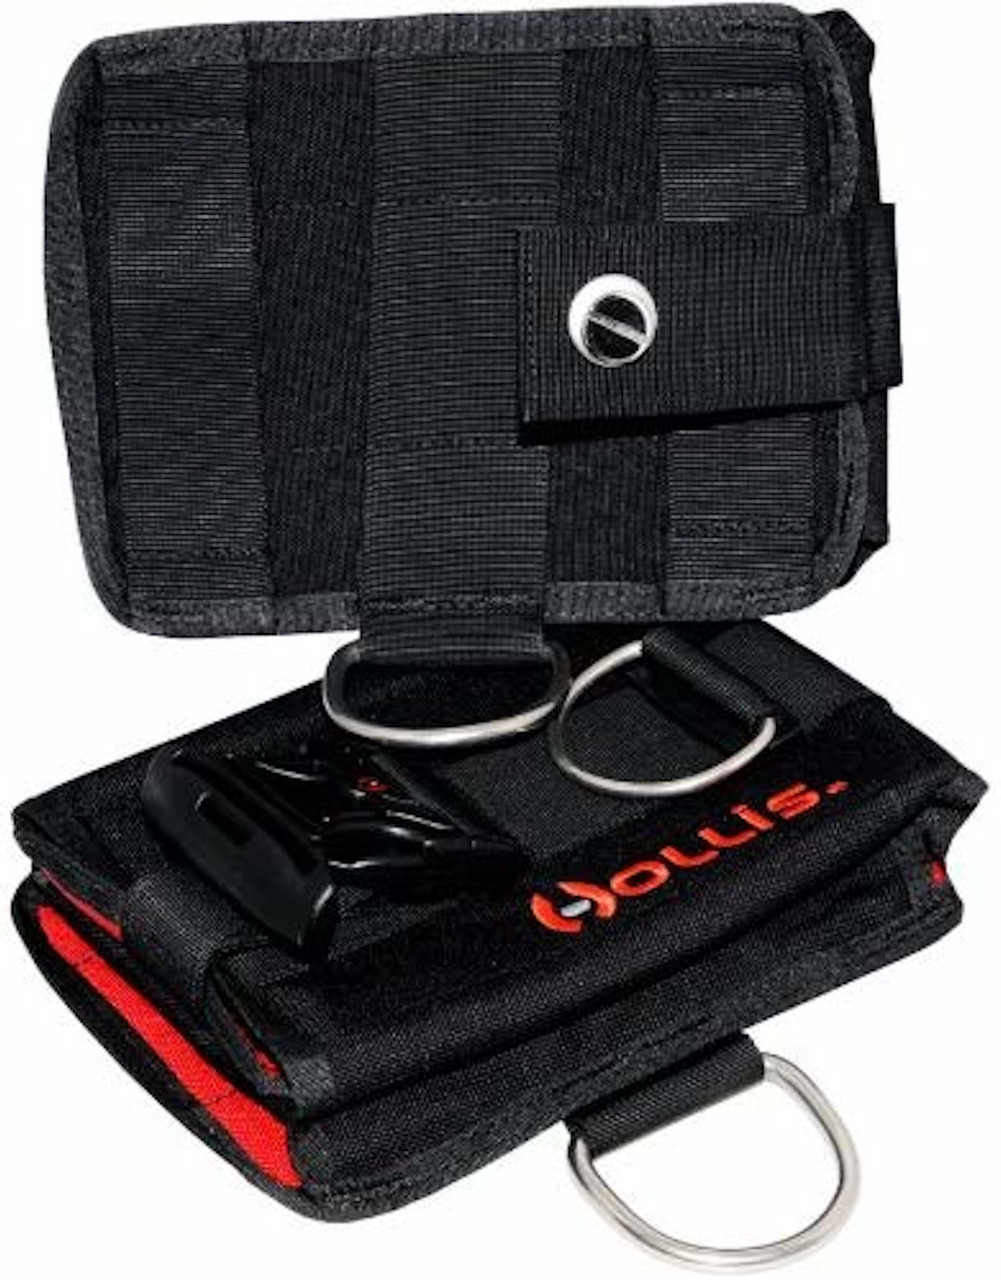 Hollis LX-Elite 10lb Solo Scuba Diving Weight System